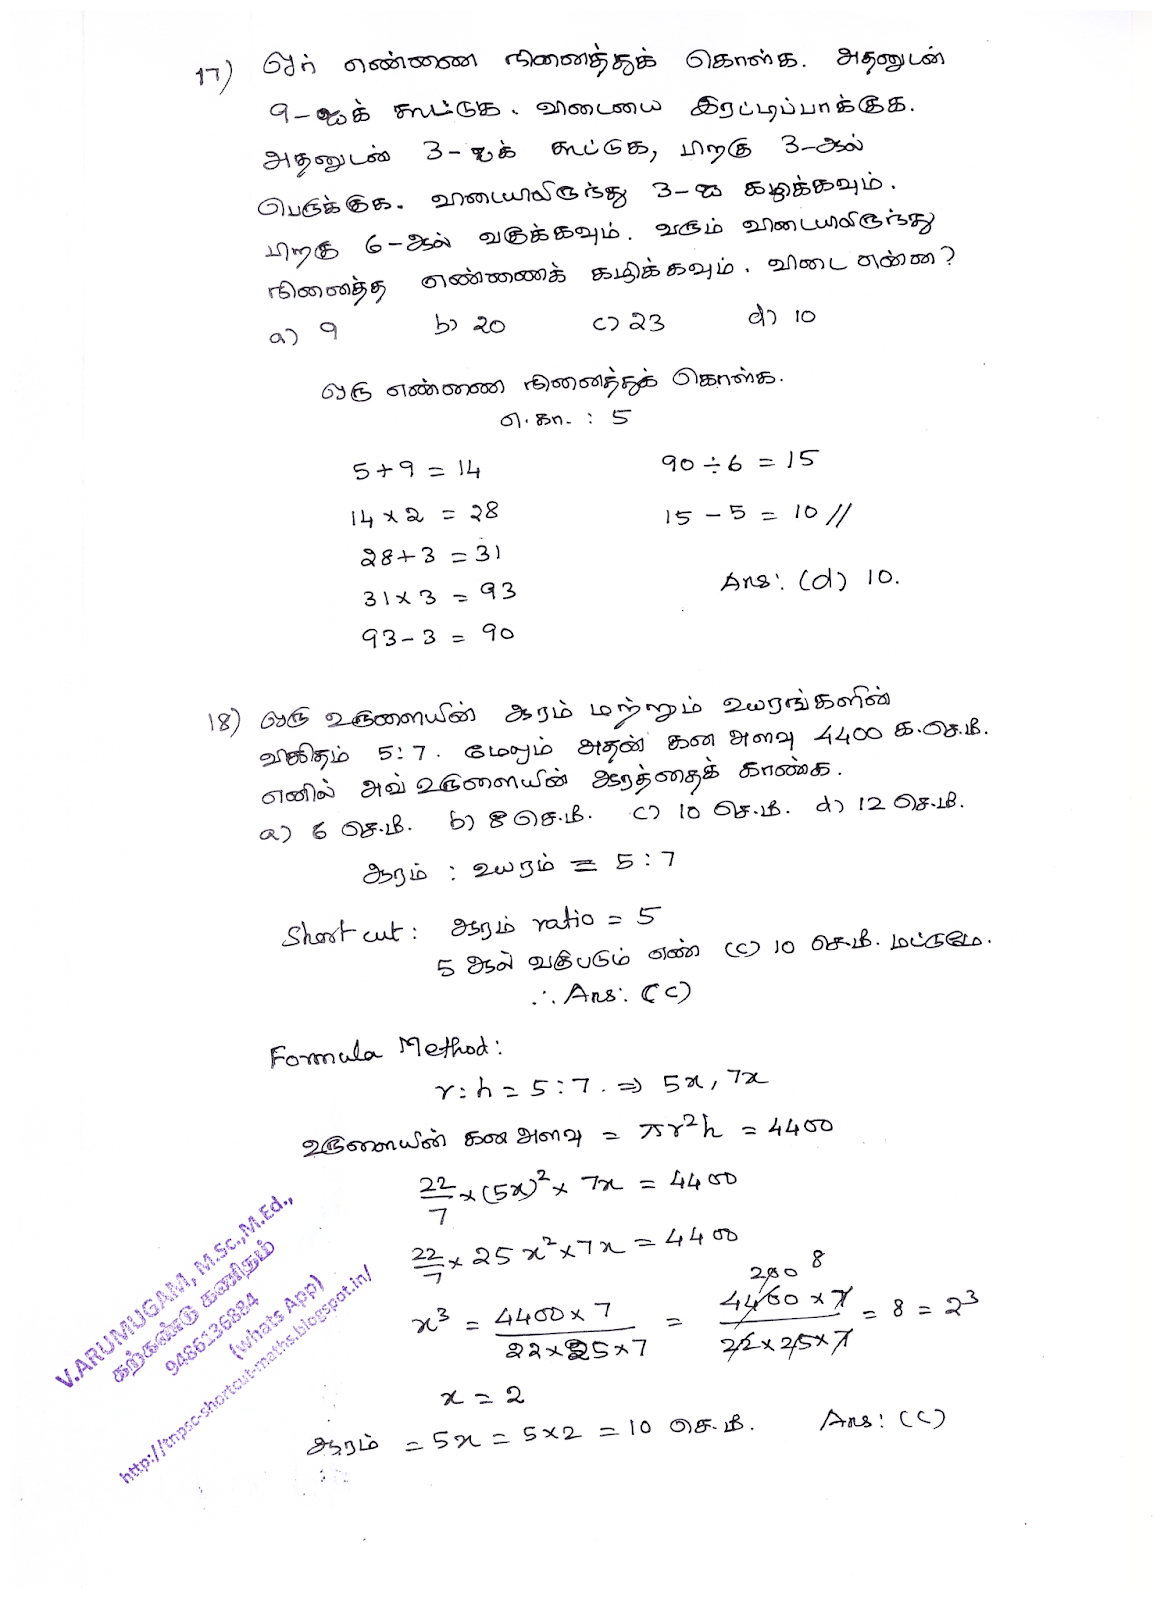 TNPSC – 2017 -  ASSISTANT CONSERVATOR OF FORESTS INCLUDED IN GROUP-I A SERVICE EXAM - EXAM DATE: 17.12.2017